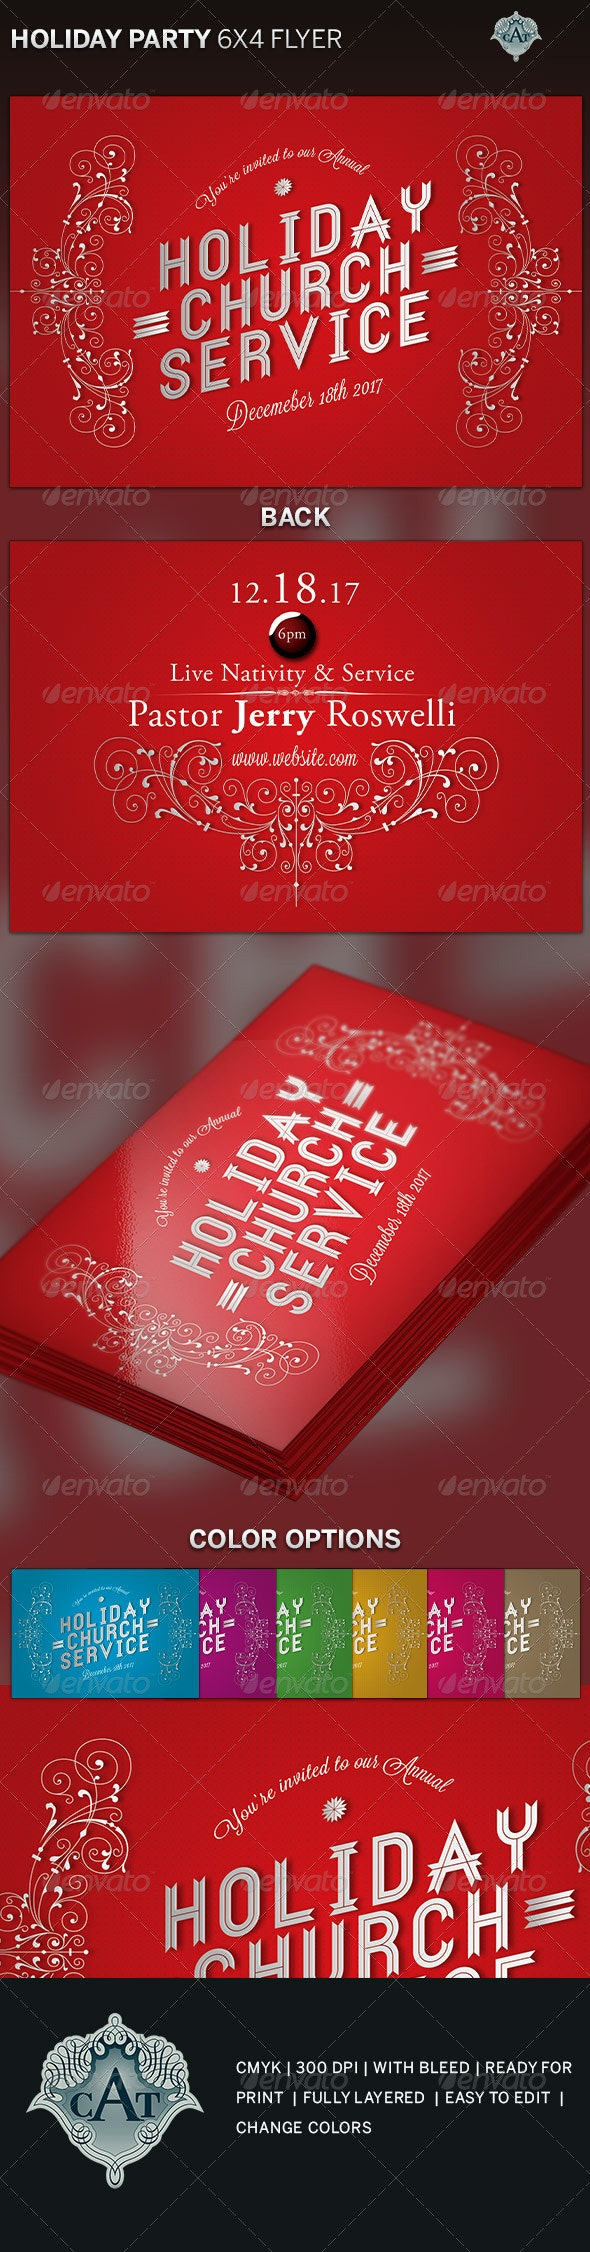 Holiday Church Service Flyer Template - Holidays Events